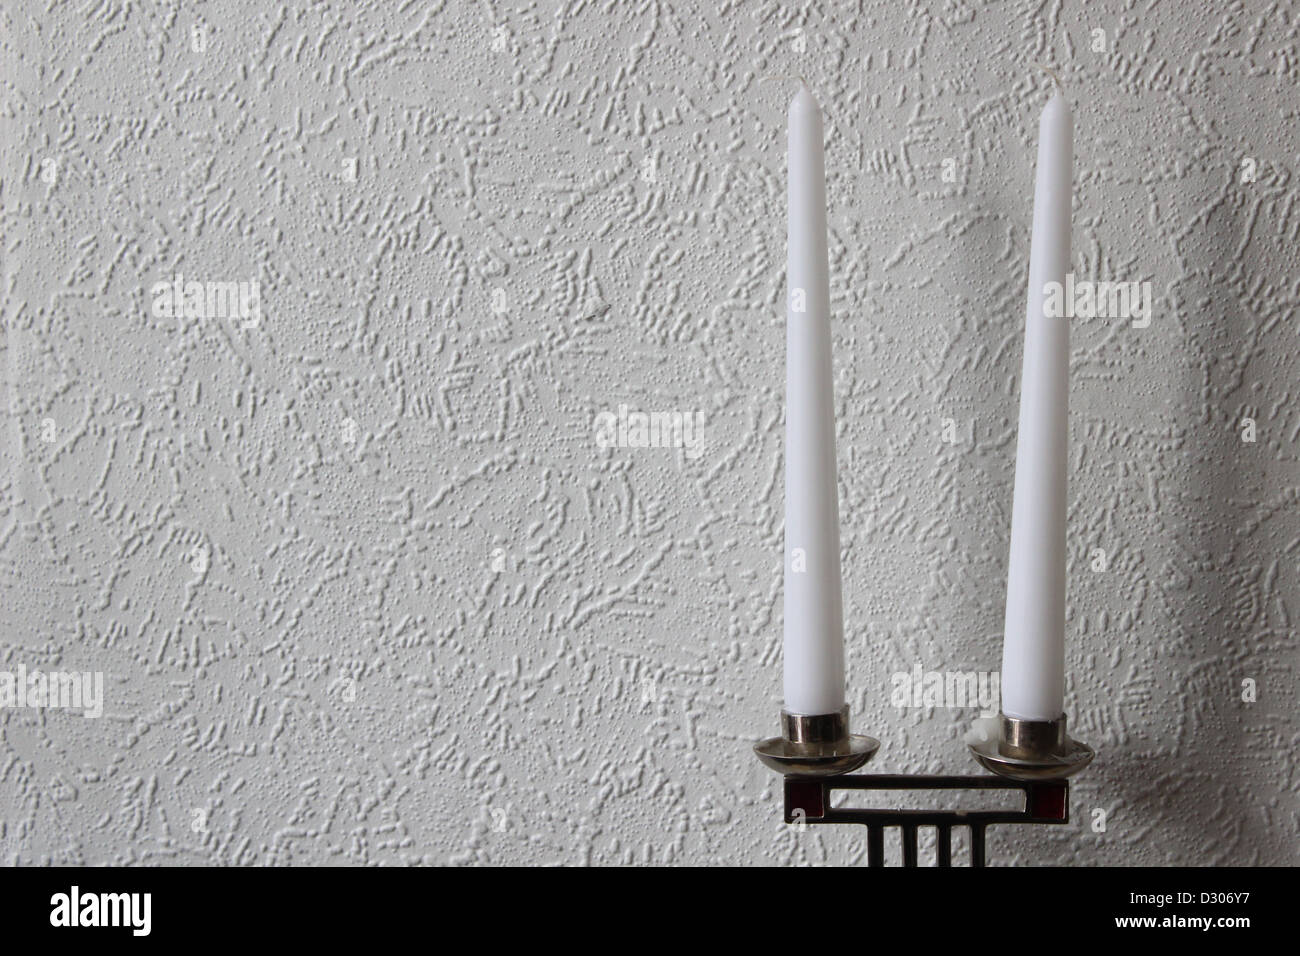 2 candle sticks against plane white wall. - Stock Image